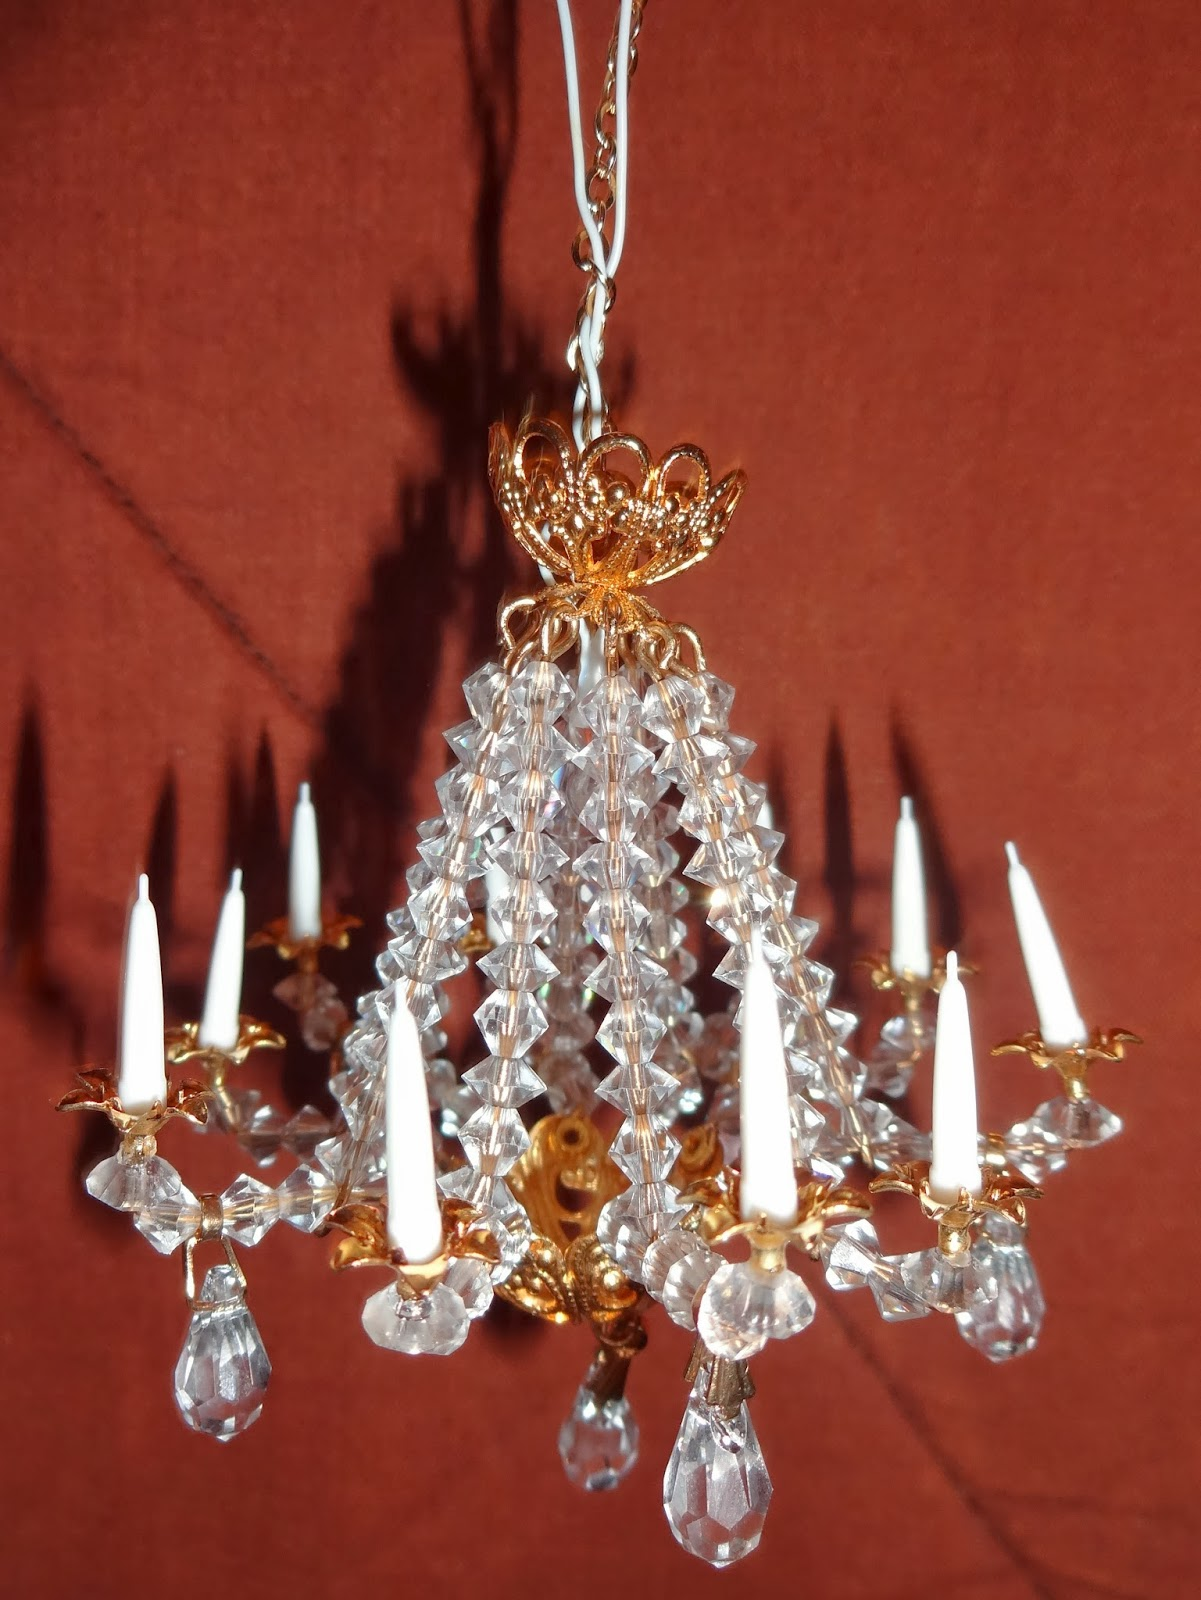 Julies boyz the status quo is nice a miniature chandelier i made this month arubaitofo Image collections